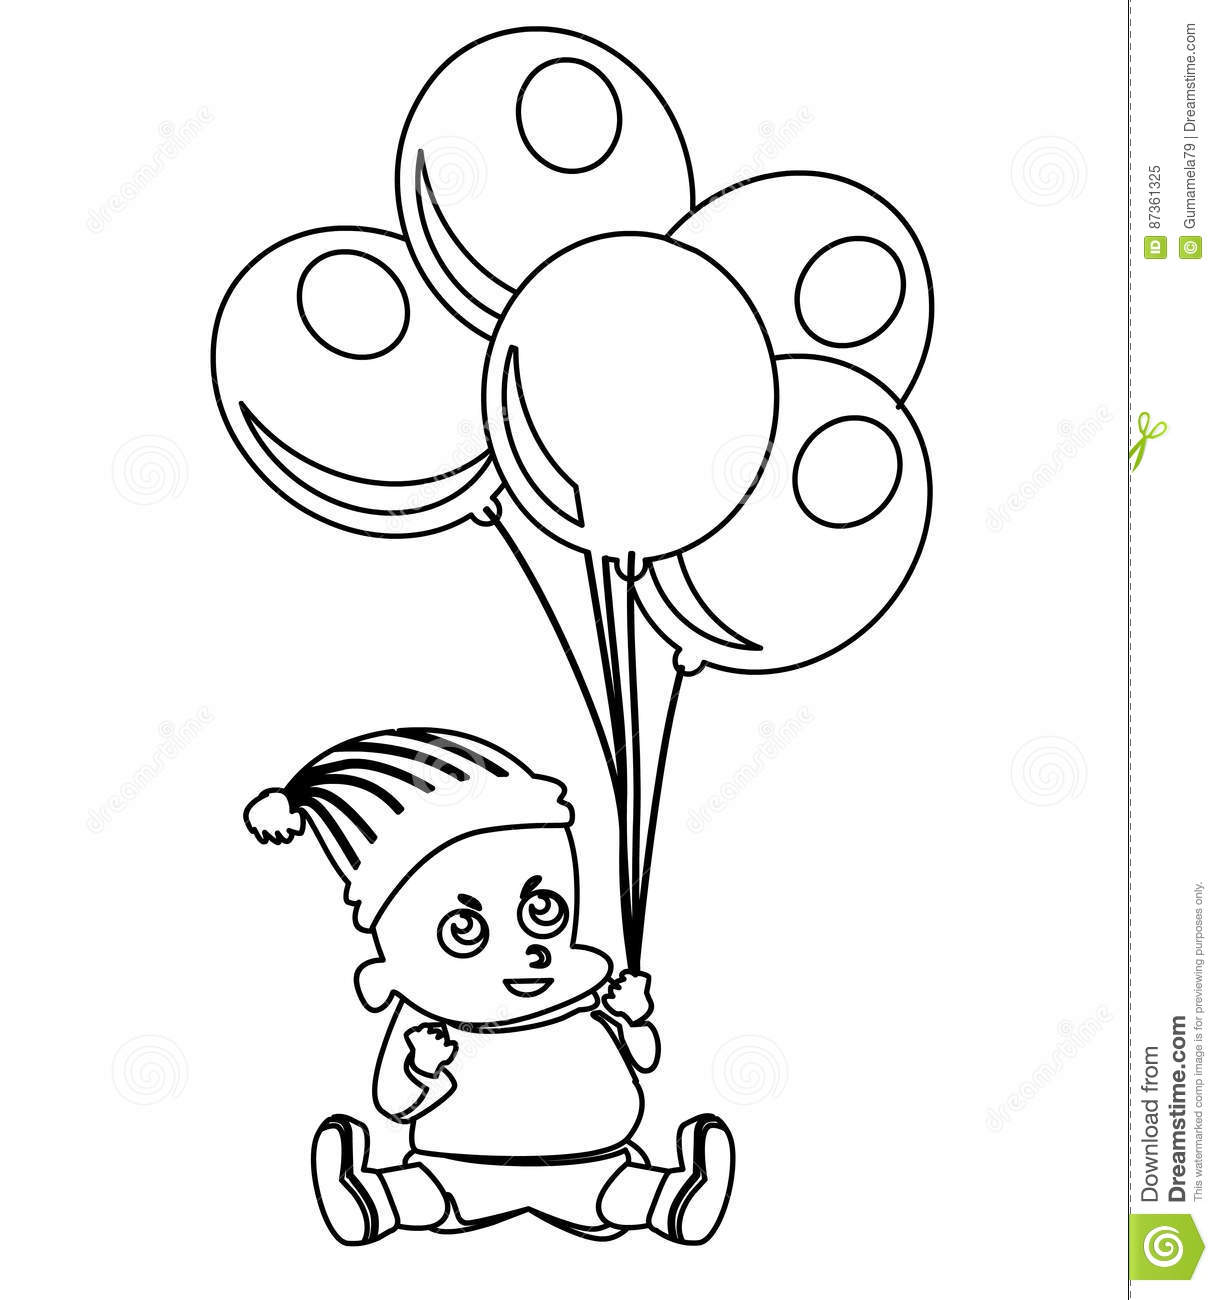 cute little baby with balloons coloring page stock illustration